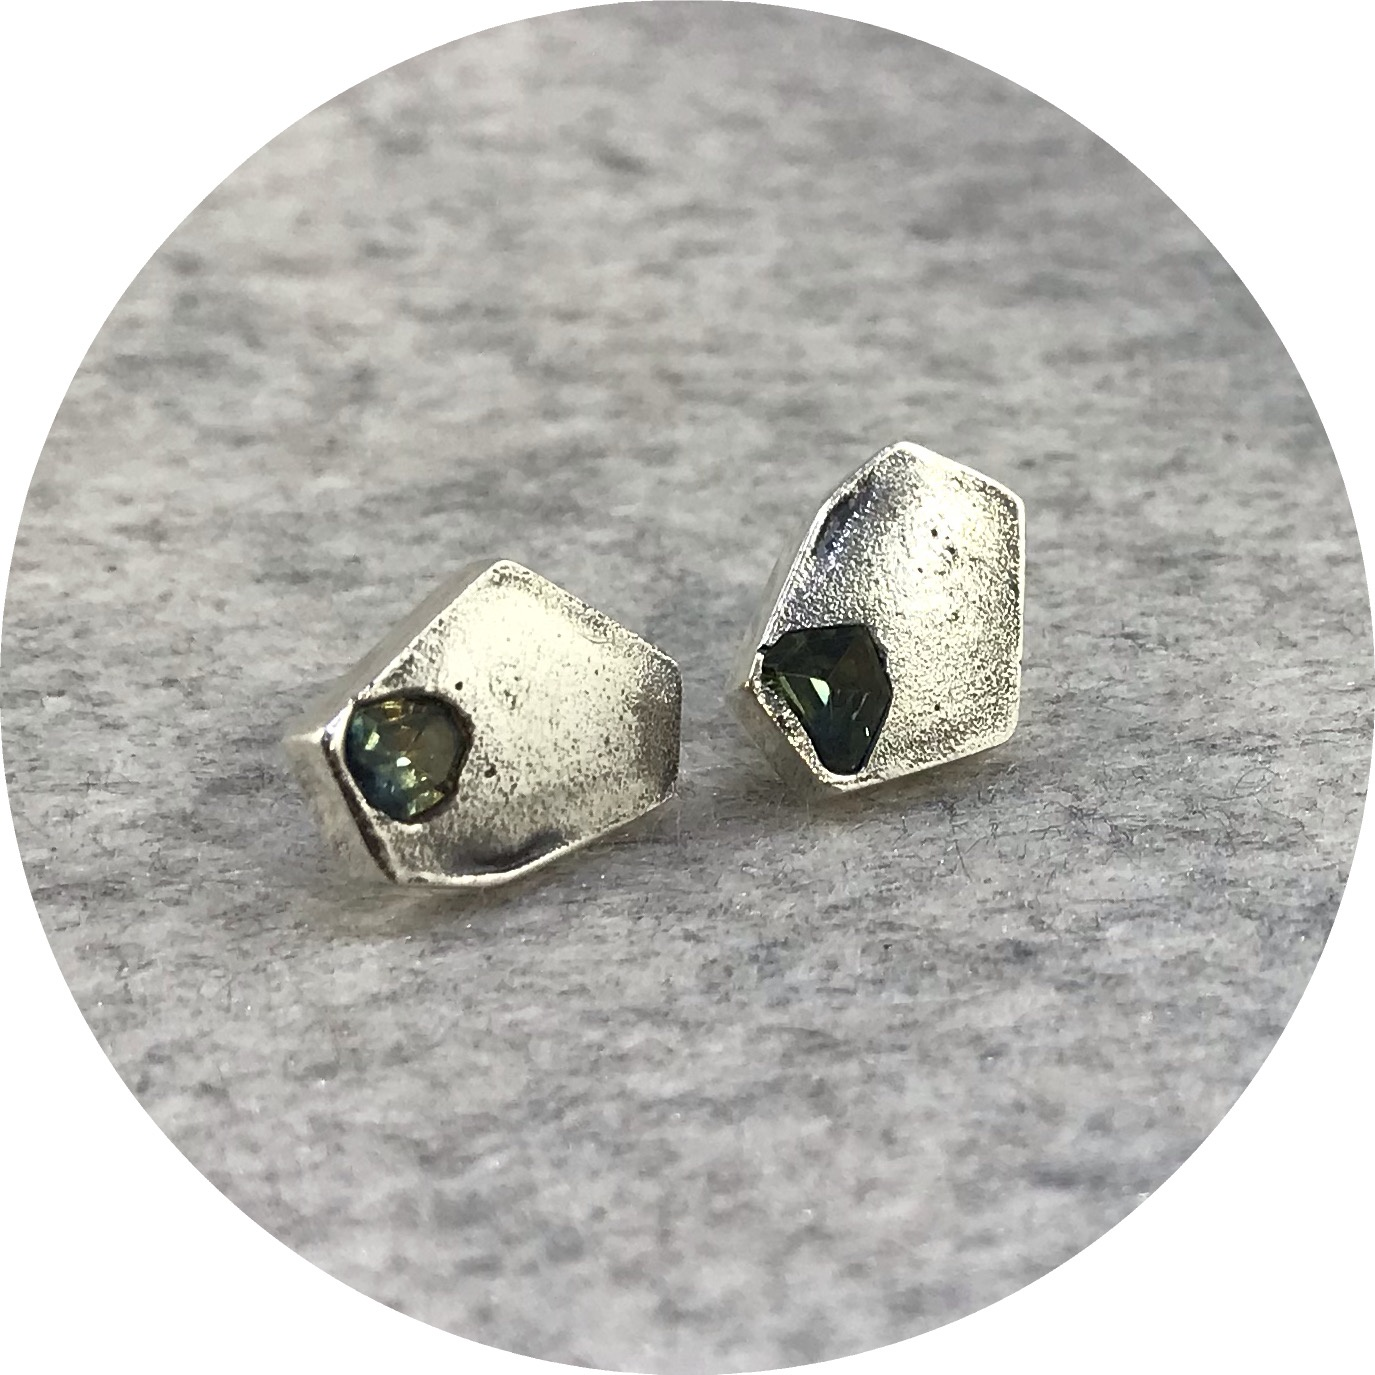 Kirra-Lea Caynes- Stud earrings. Facetted green sapphires in sterling silver.